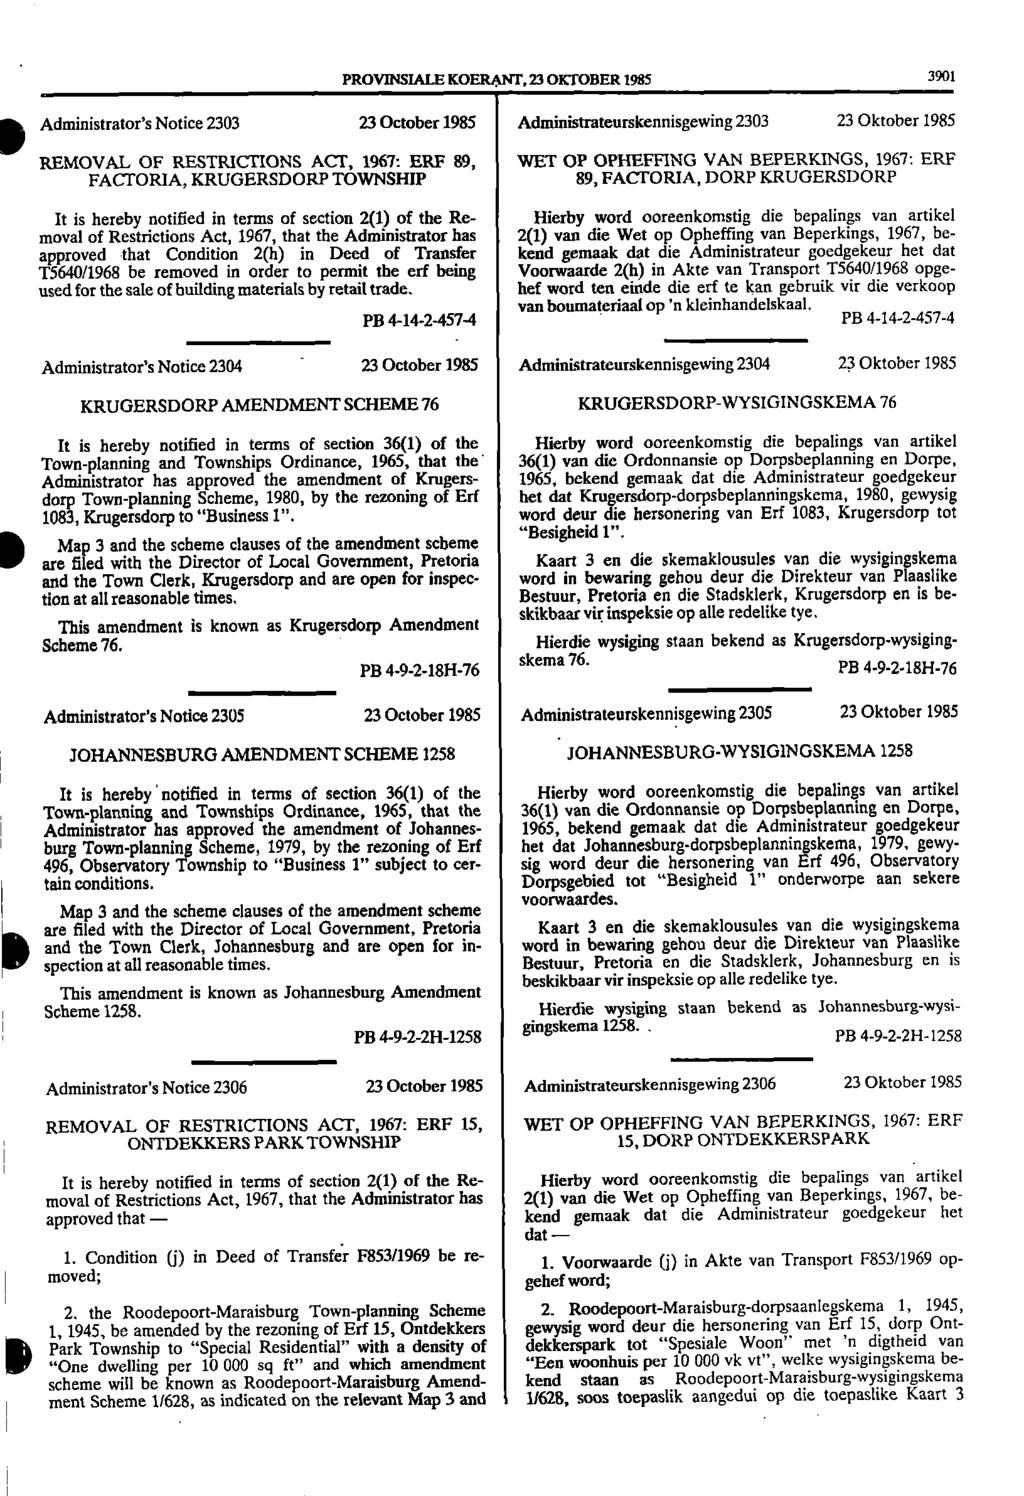 1 burg 1 PROVINSIALE KOERAP1T, 23 OKTOBER 1985 3901 Administrator's Notice 2303 23 October 1985 Administrateurskennisgewing 2303 23 Oktober 1985 REMOVAL OF RESTRICTIONS ACT, 1967: ERF 89, FACTORIA,